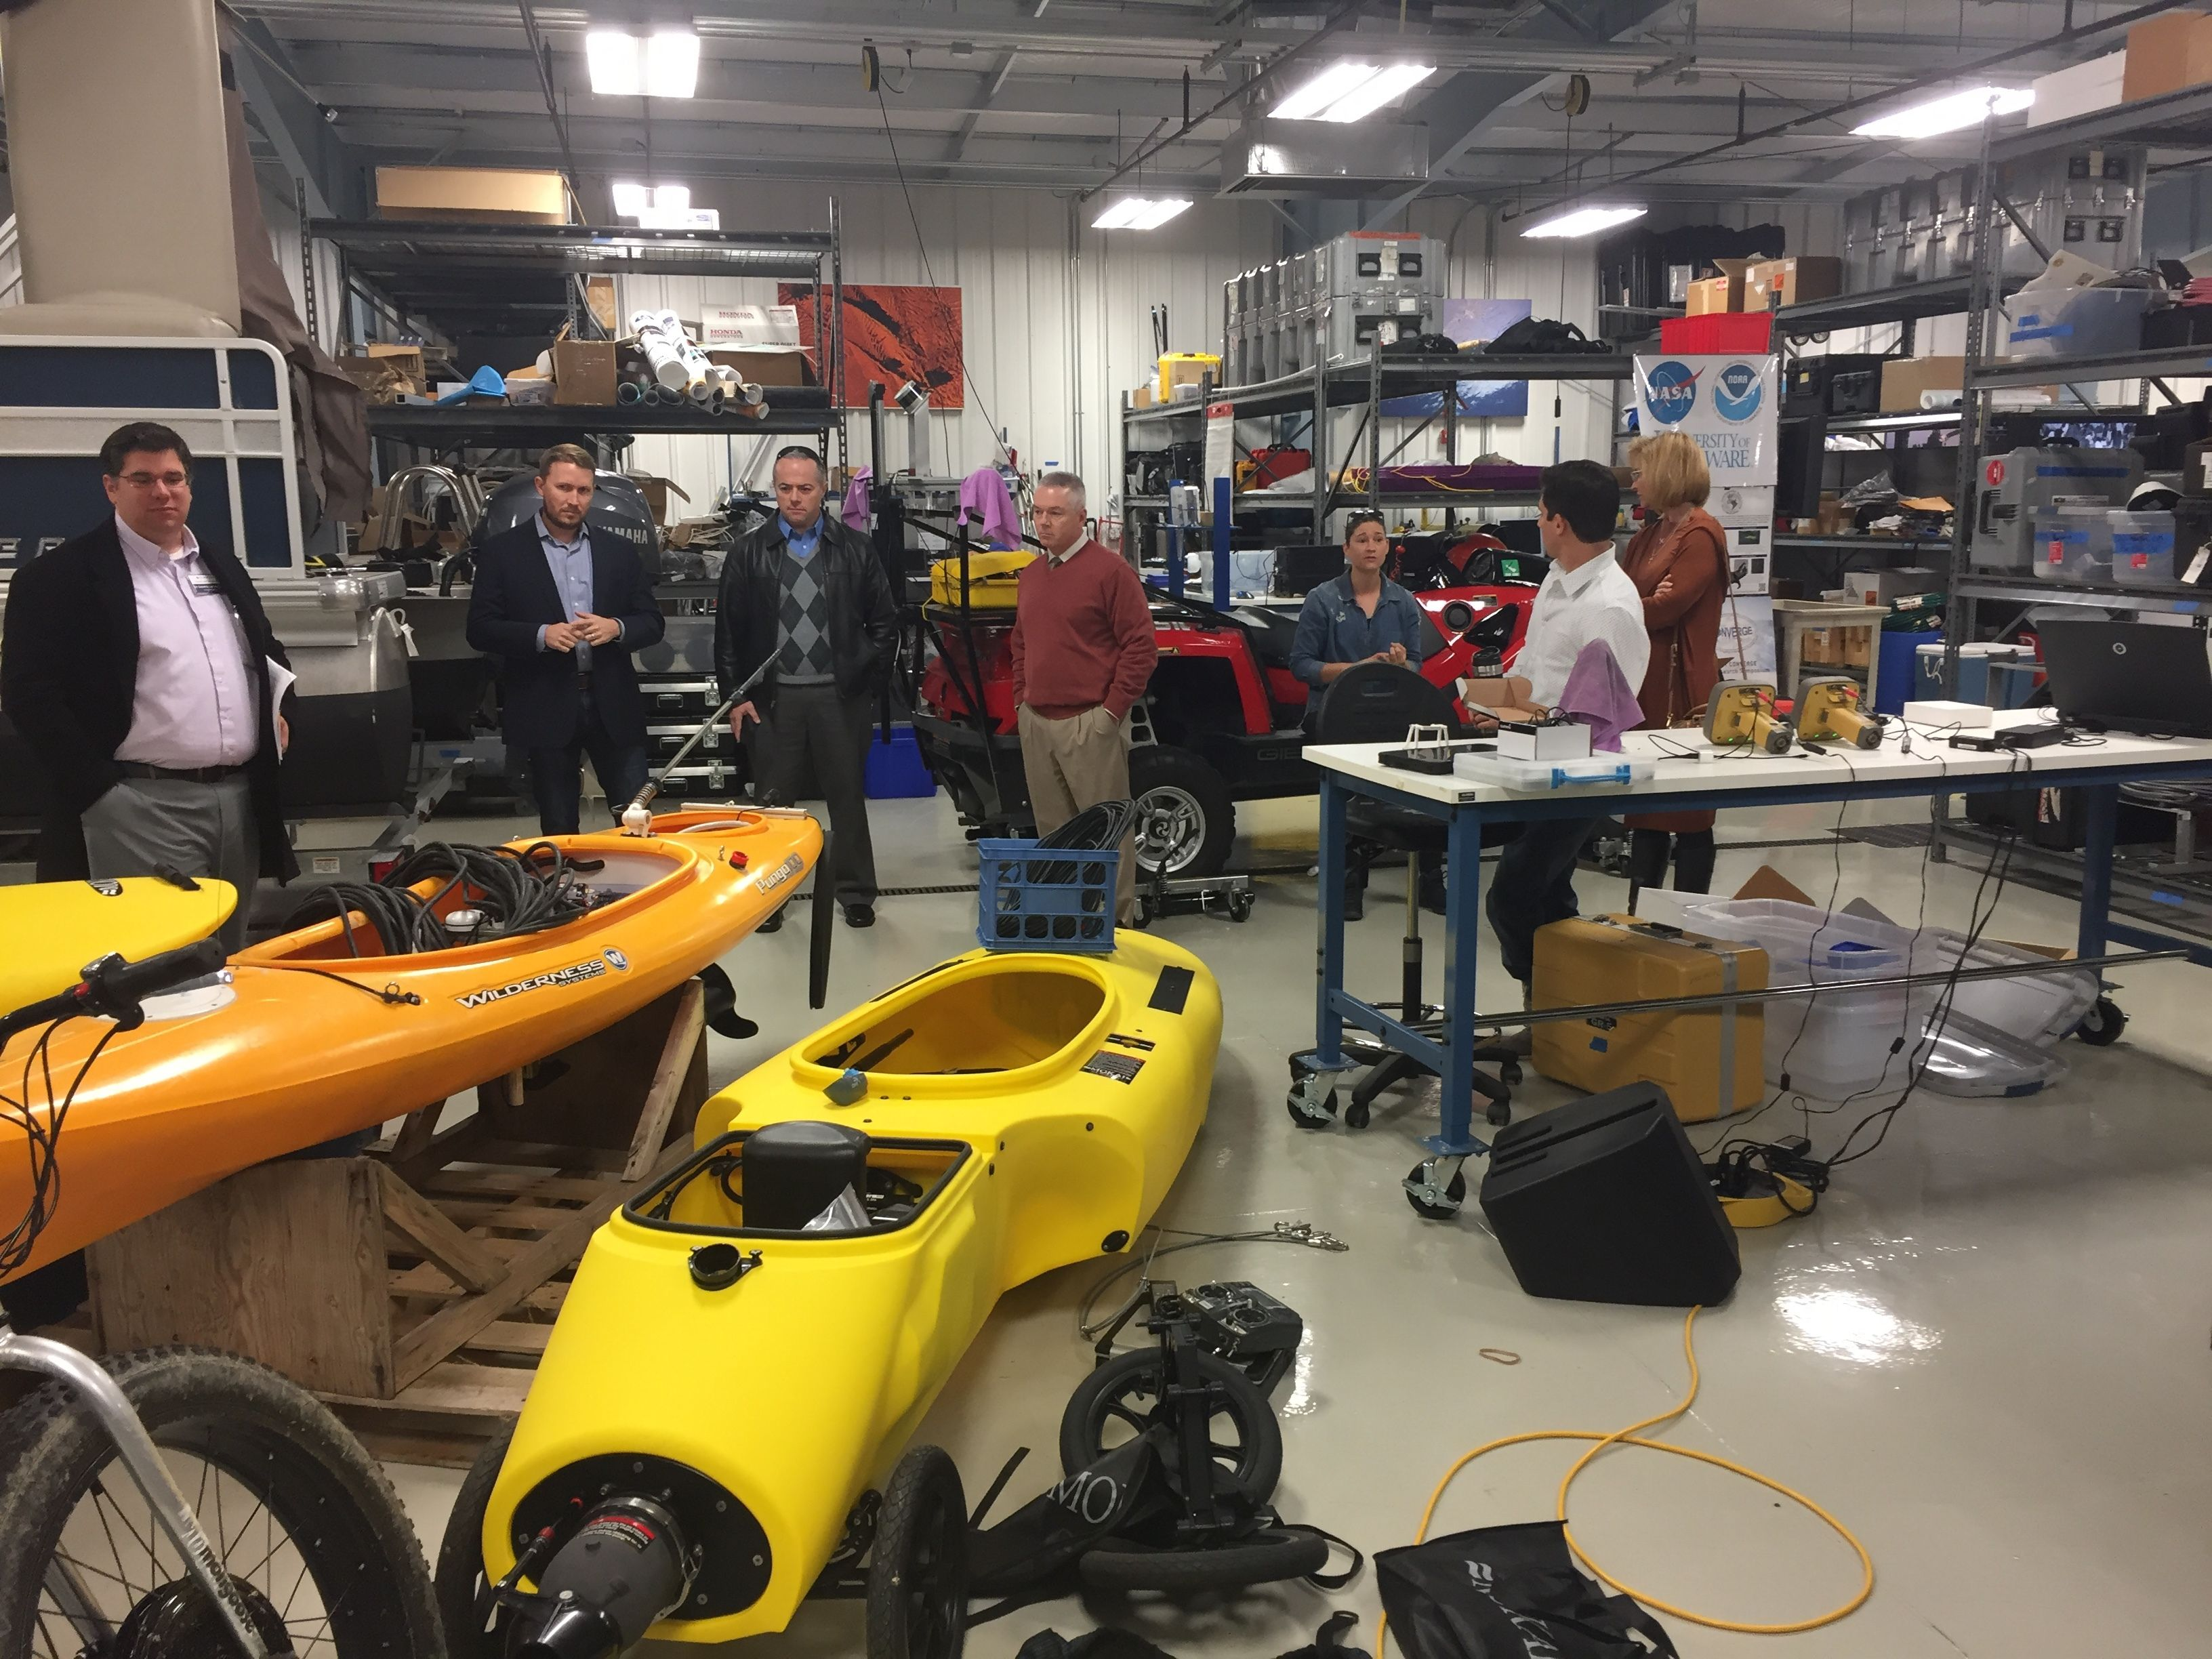 SCSA Tour: Robotic Discovery Labs 11/16/2017